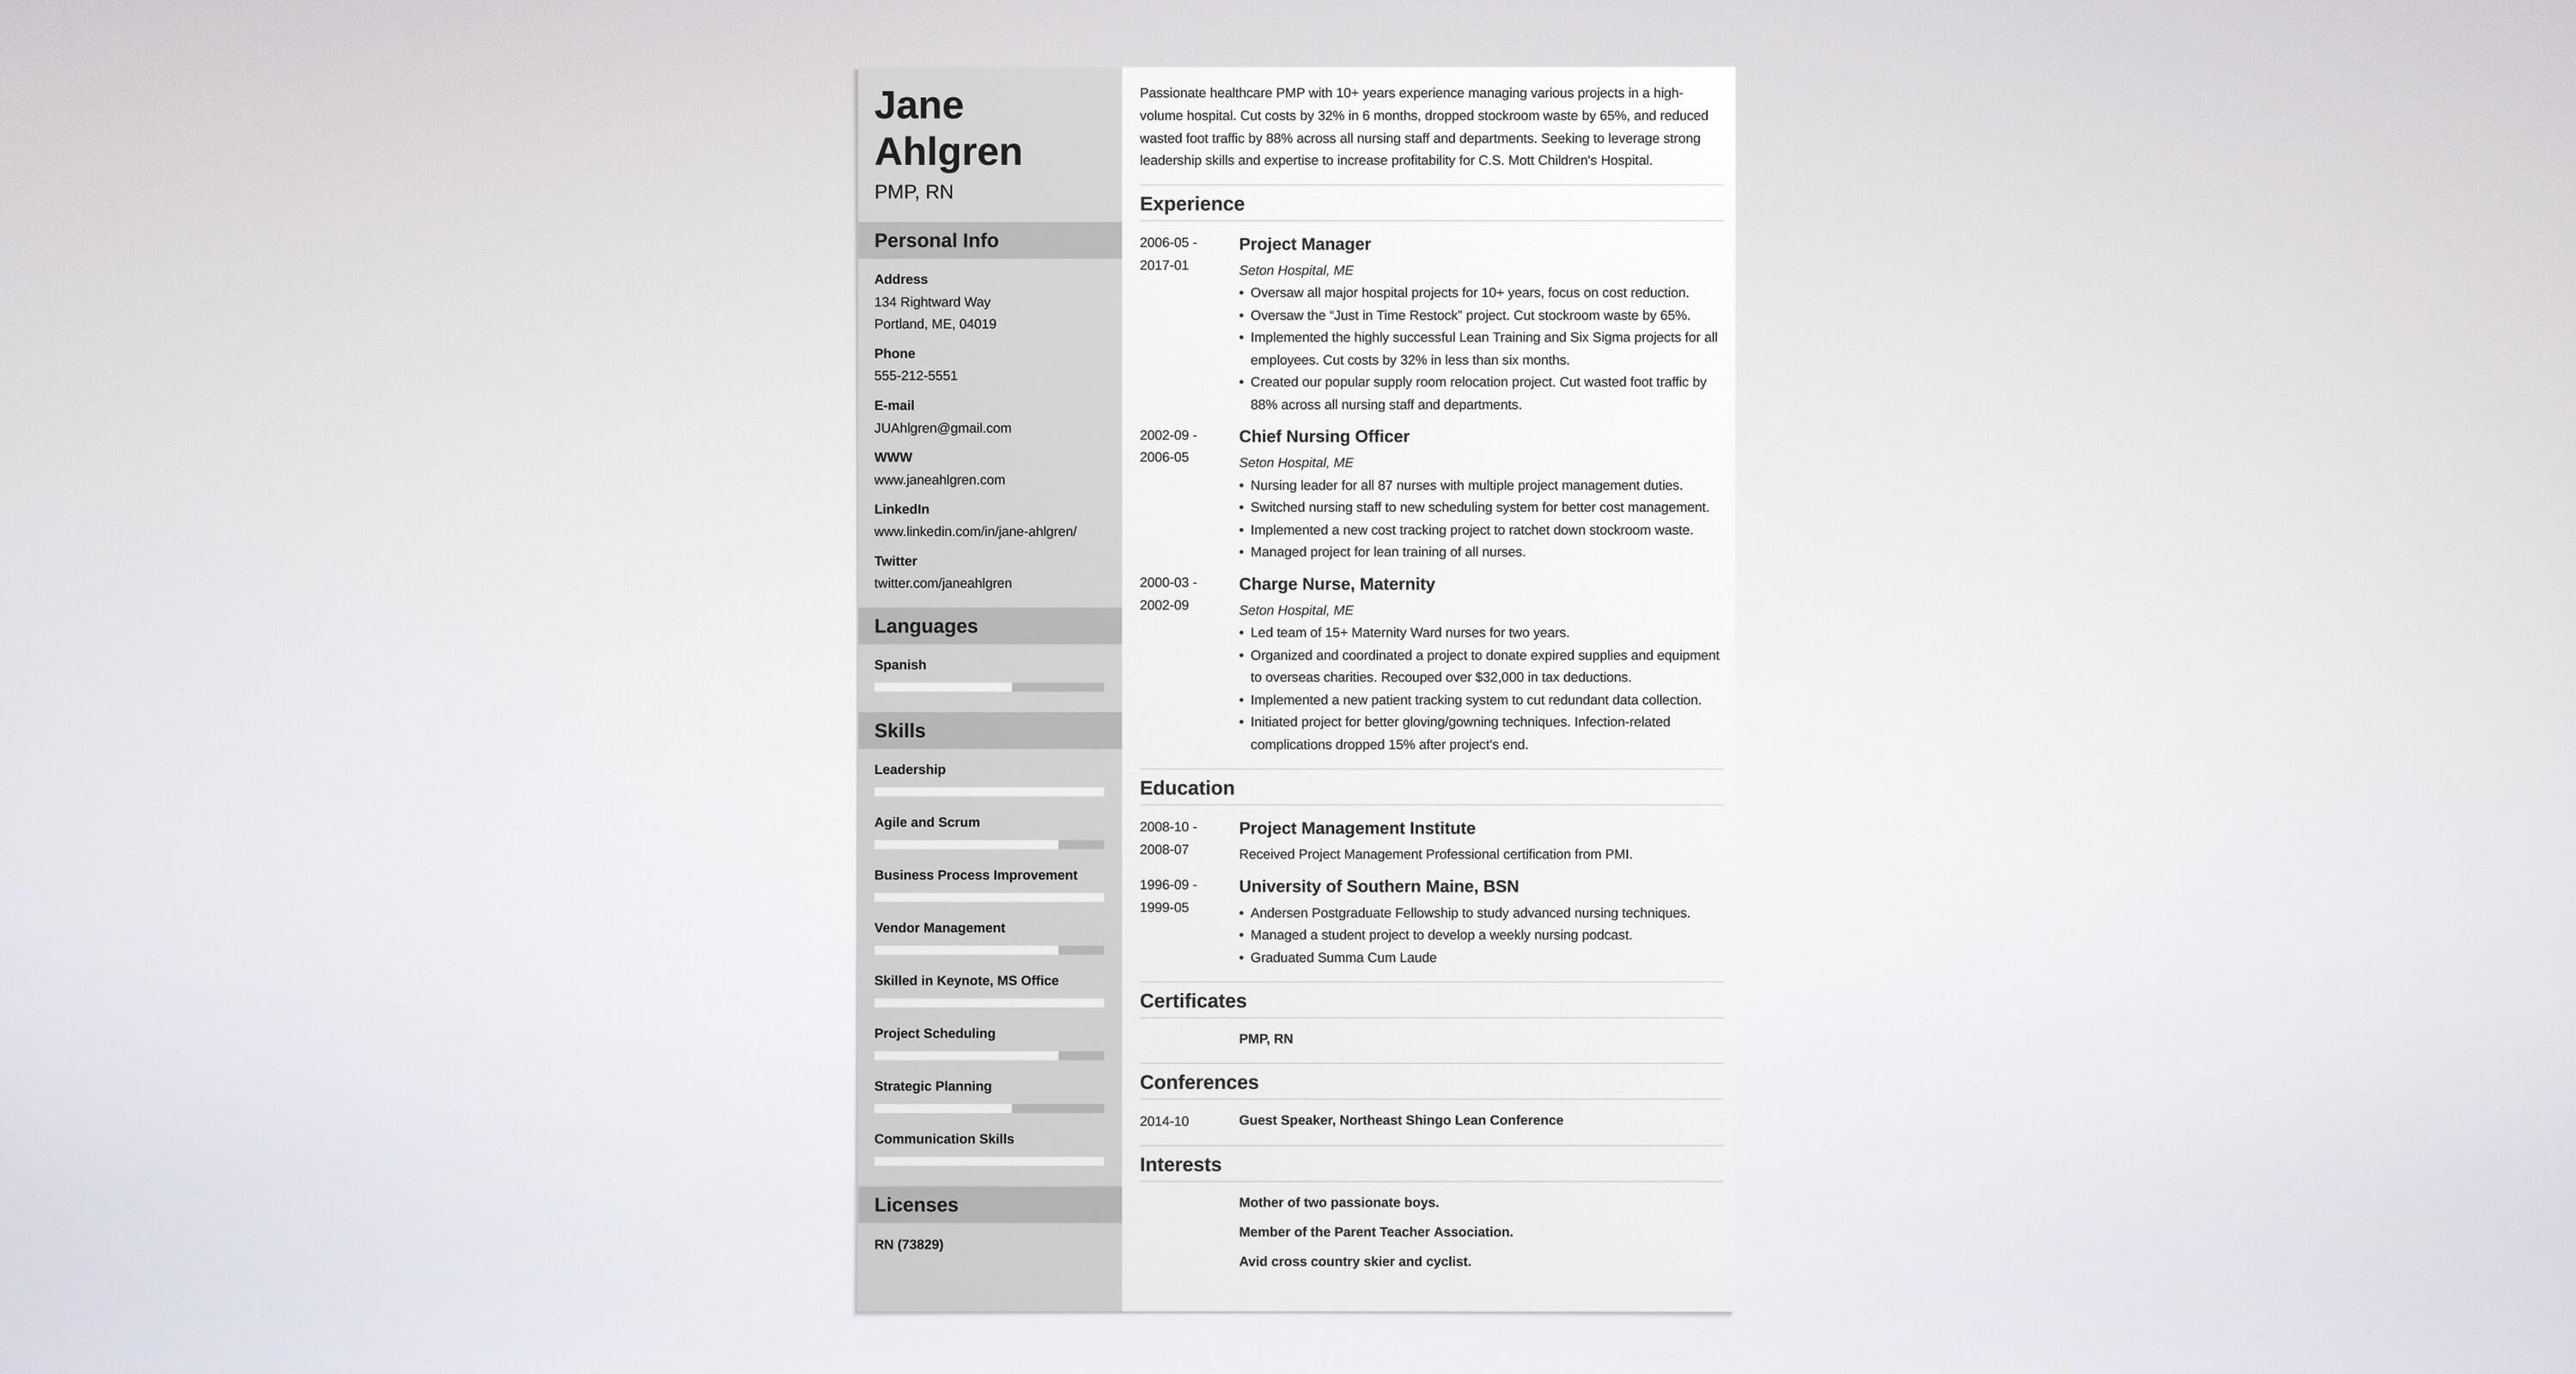 Project Manager Resume: Sample U0026 Complete Guide [+20 Examples]